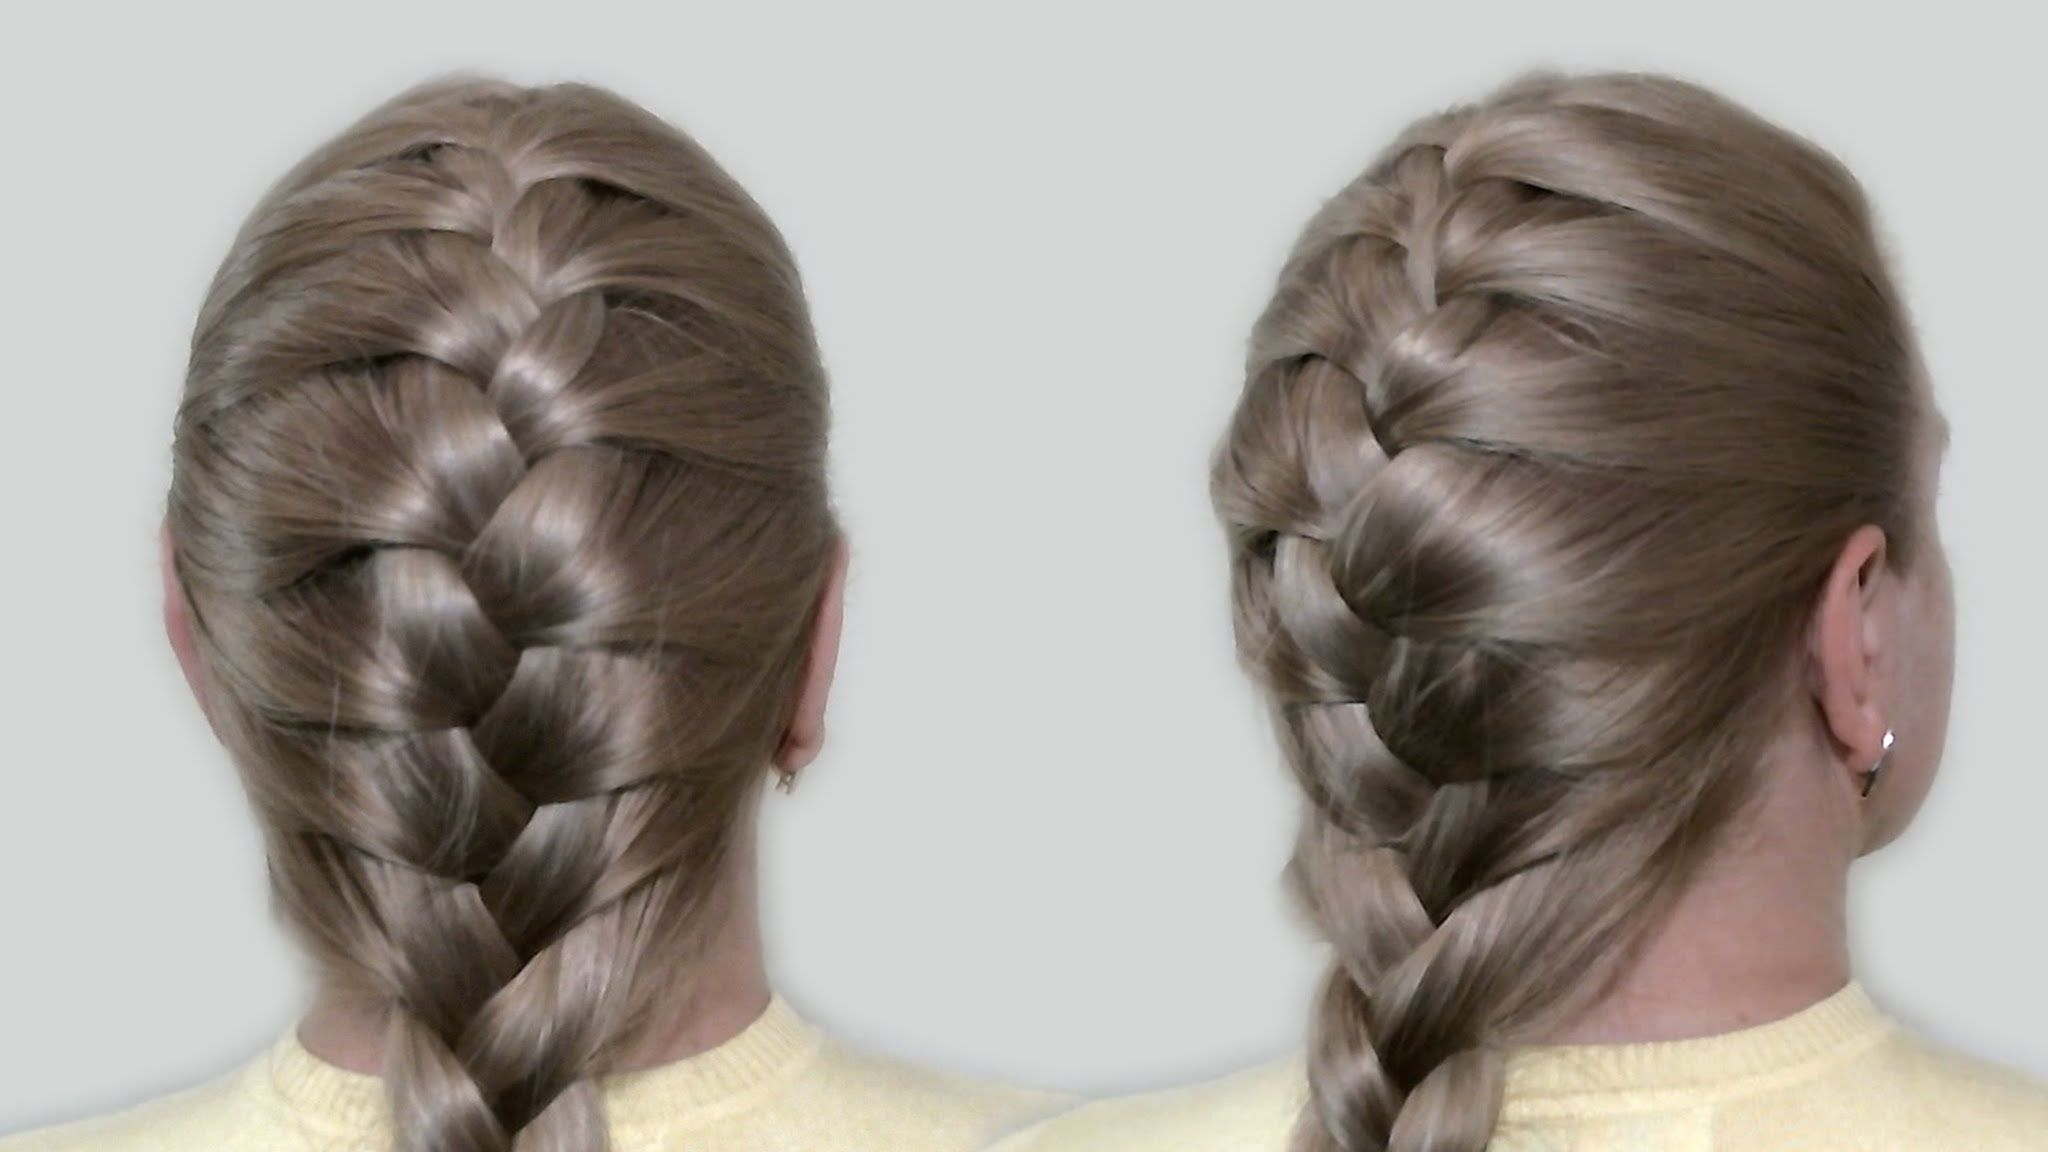 Classic french braid by yourself tutorial hairstyles for medium classic french braid by yourself tutorial hairstyles for medium long hair easy ponytail hairstyleshairstyles videoshow solutioingenieria Image collections